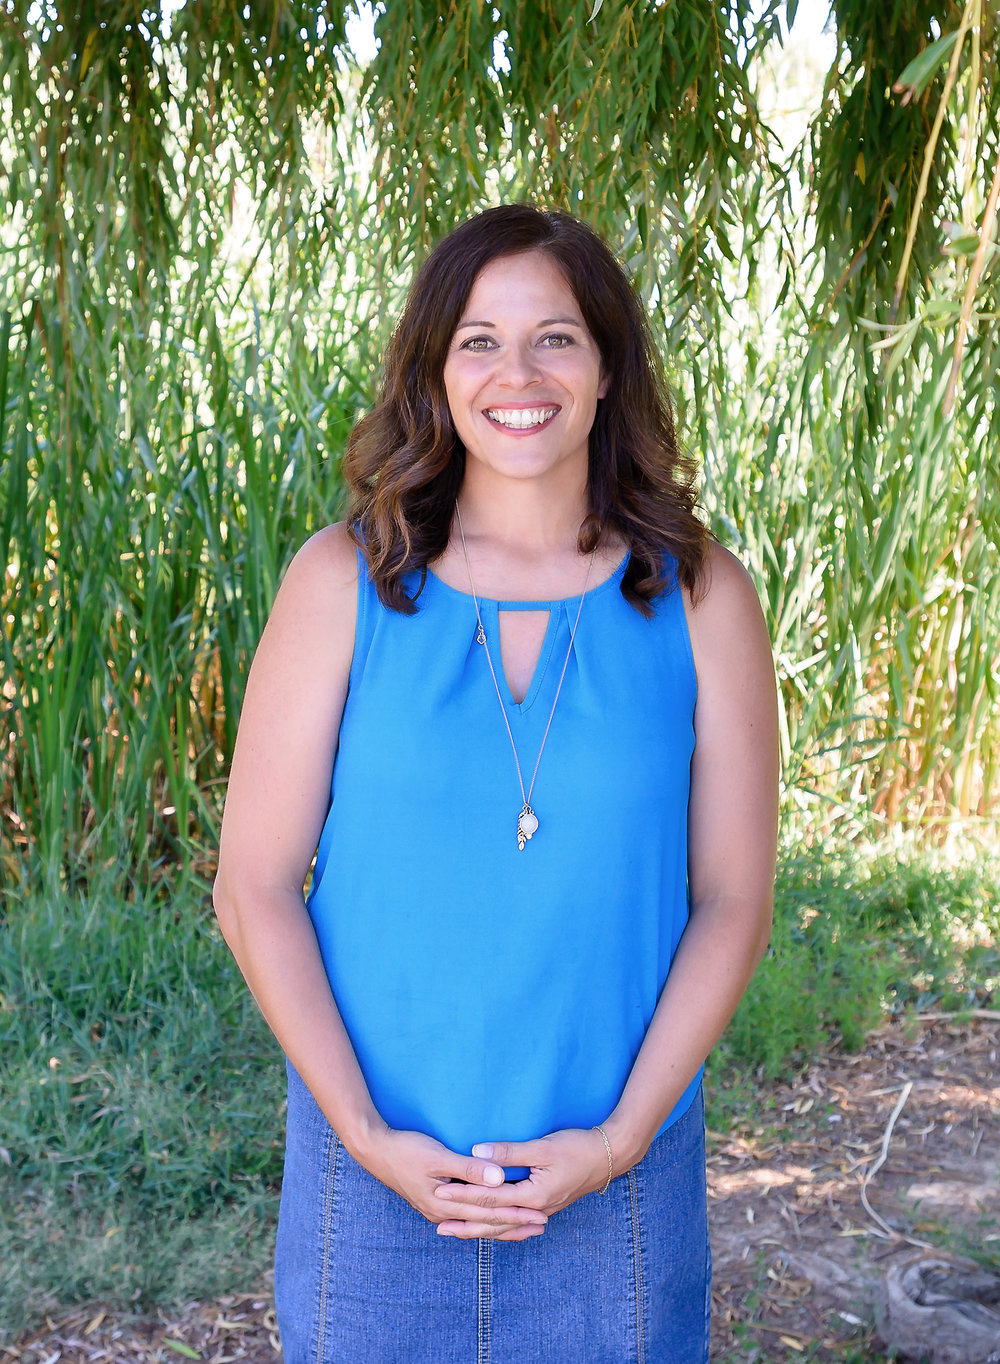 Gina Zimpelmann, Communication Coordinator - It still astounds me that I get to combine my love for connecting with people, my excitement to share Jesus and the blessing of personally growing in God's Word!  I am often energized after a day of connecting with others – whether it be on one of our social media accounts, connecting with others over email, phone or in person, or planning with our team. It is amazing to see God working in hearts and through others.Outside of Truth in Love Ministry, you will often find me with my family. My husband, Matt, and I love love playing board games, watching movies and getting outside with our three kids.  Volunteering at church in our children's and women's ministries gives me opportunities to continually connect with others and with God's Word.  Other than that, you'll likely find me in one of my